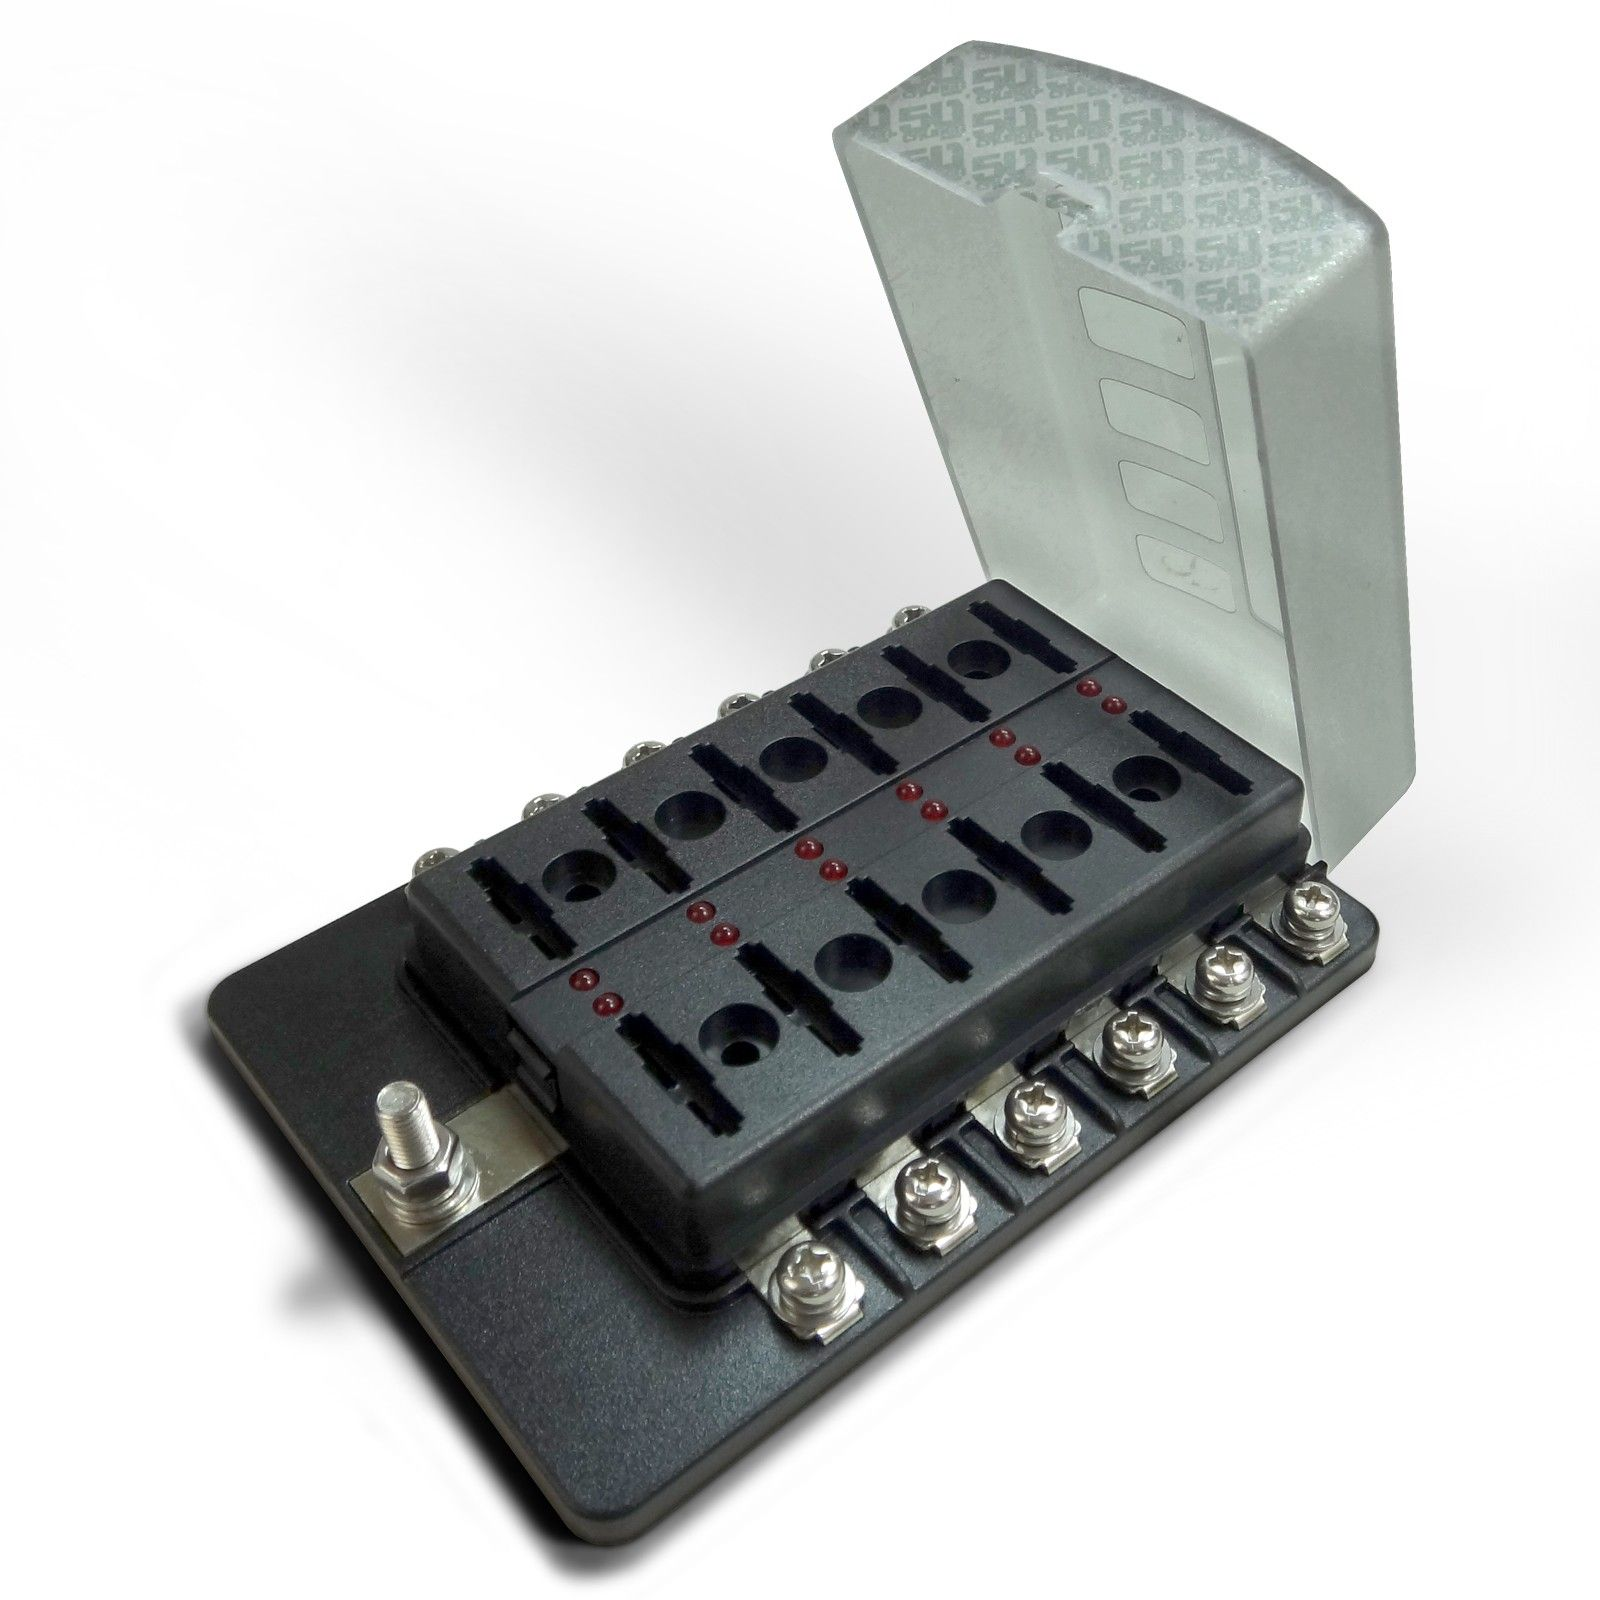 Universal 12 Way Covered 12v Circuit Blade Fuse Box With Led Circuits Indicators And Accessories